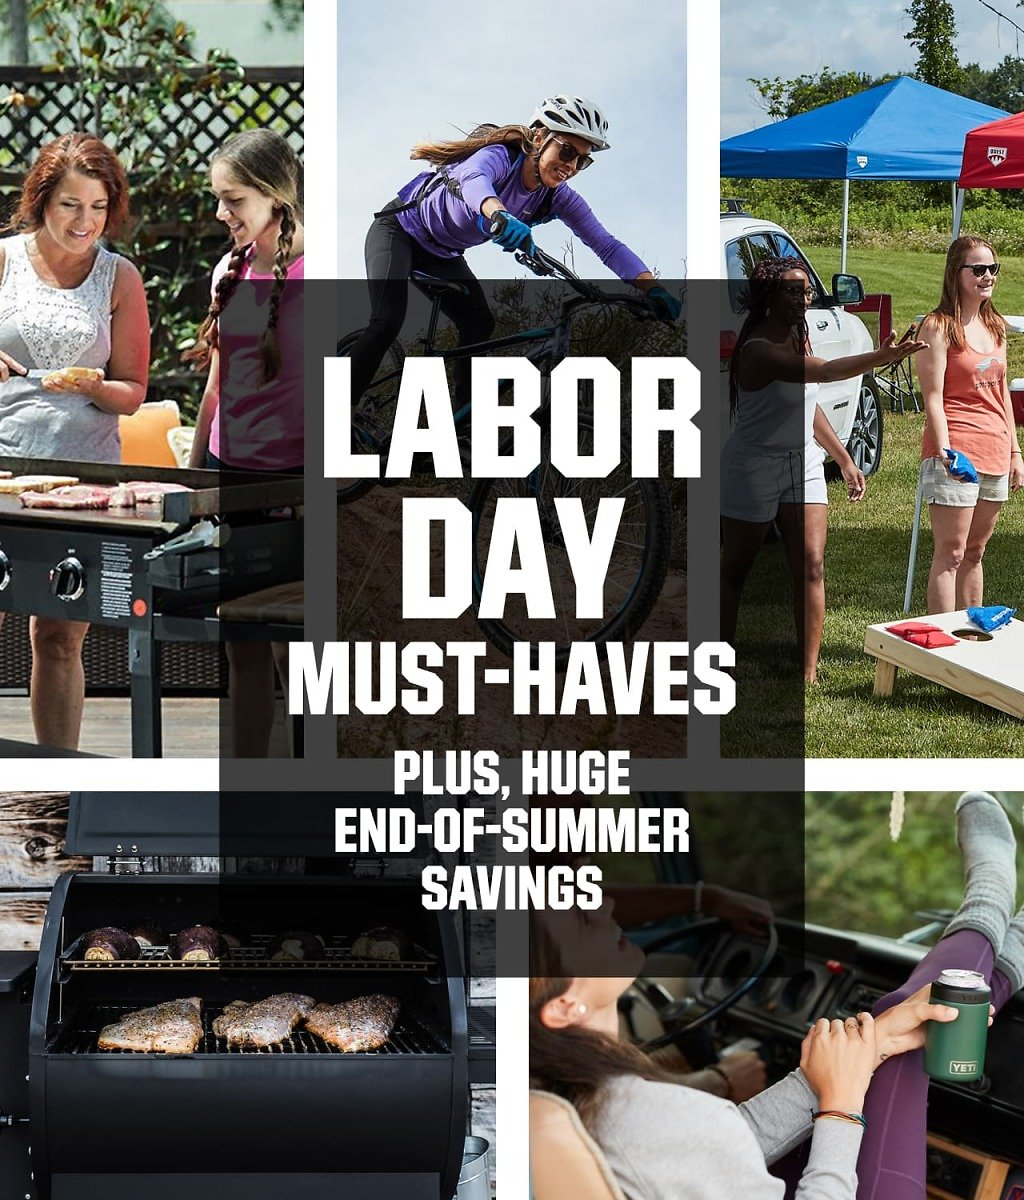 Up to 50% Off End-of-Summer Savings + Labor Day Must-Haves